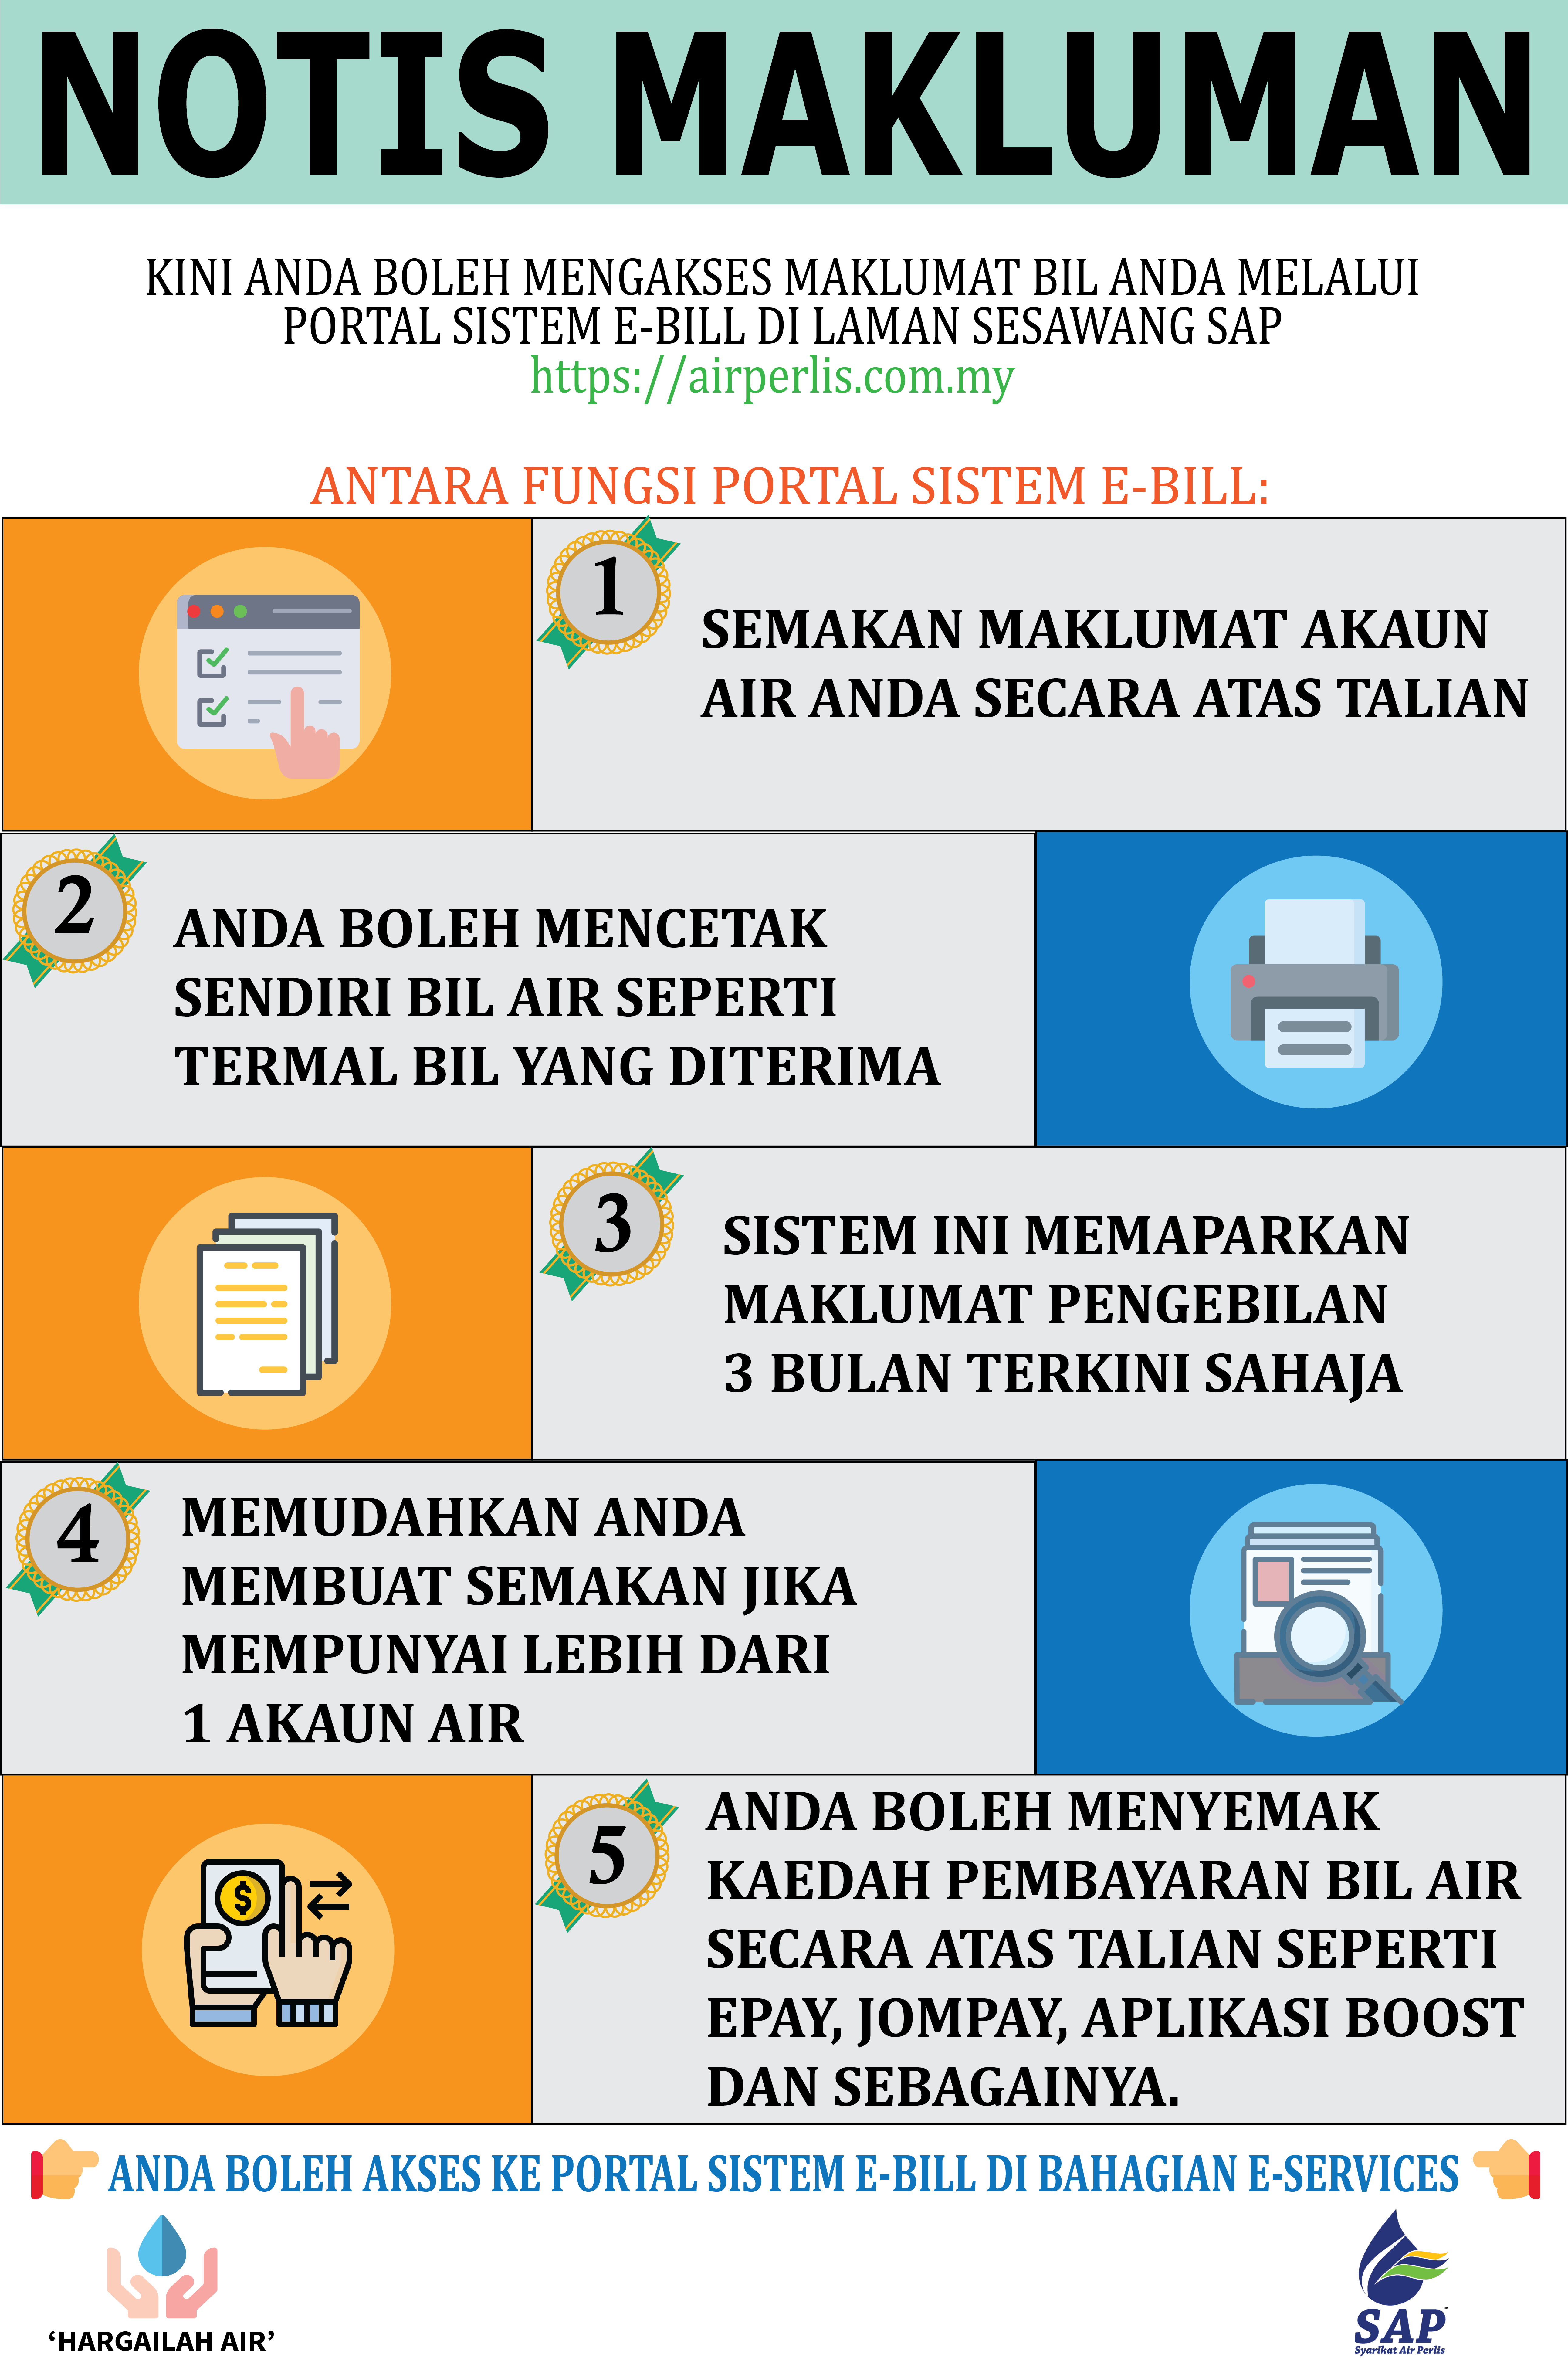 NotisE bill 01 01